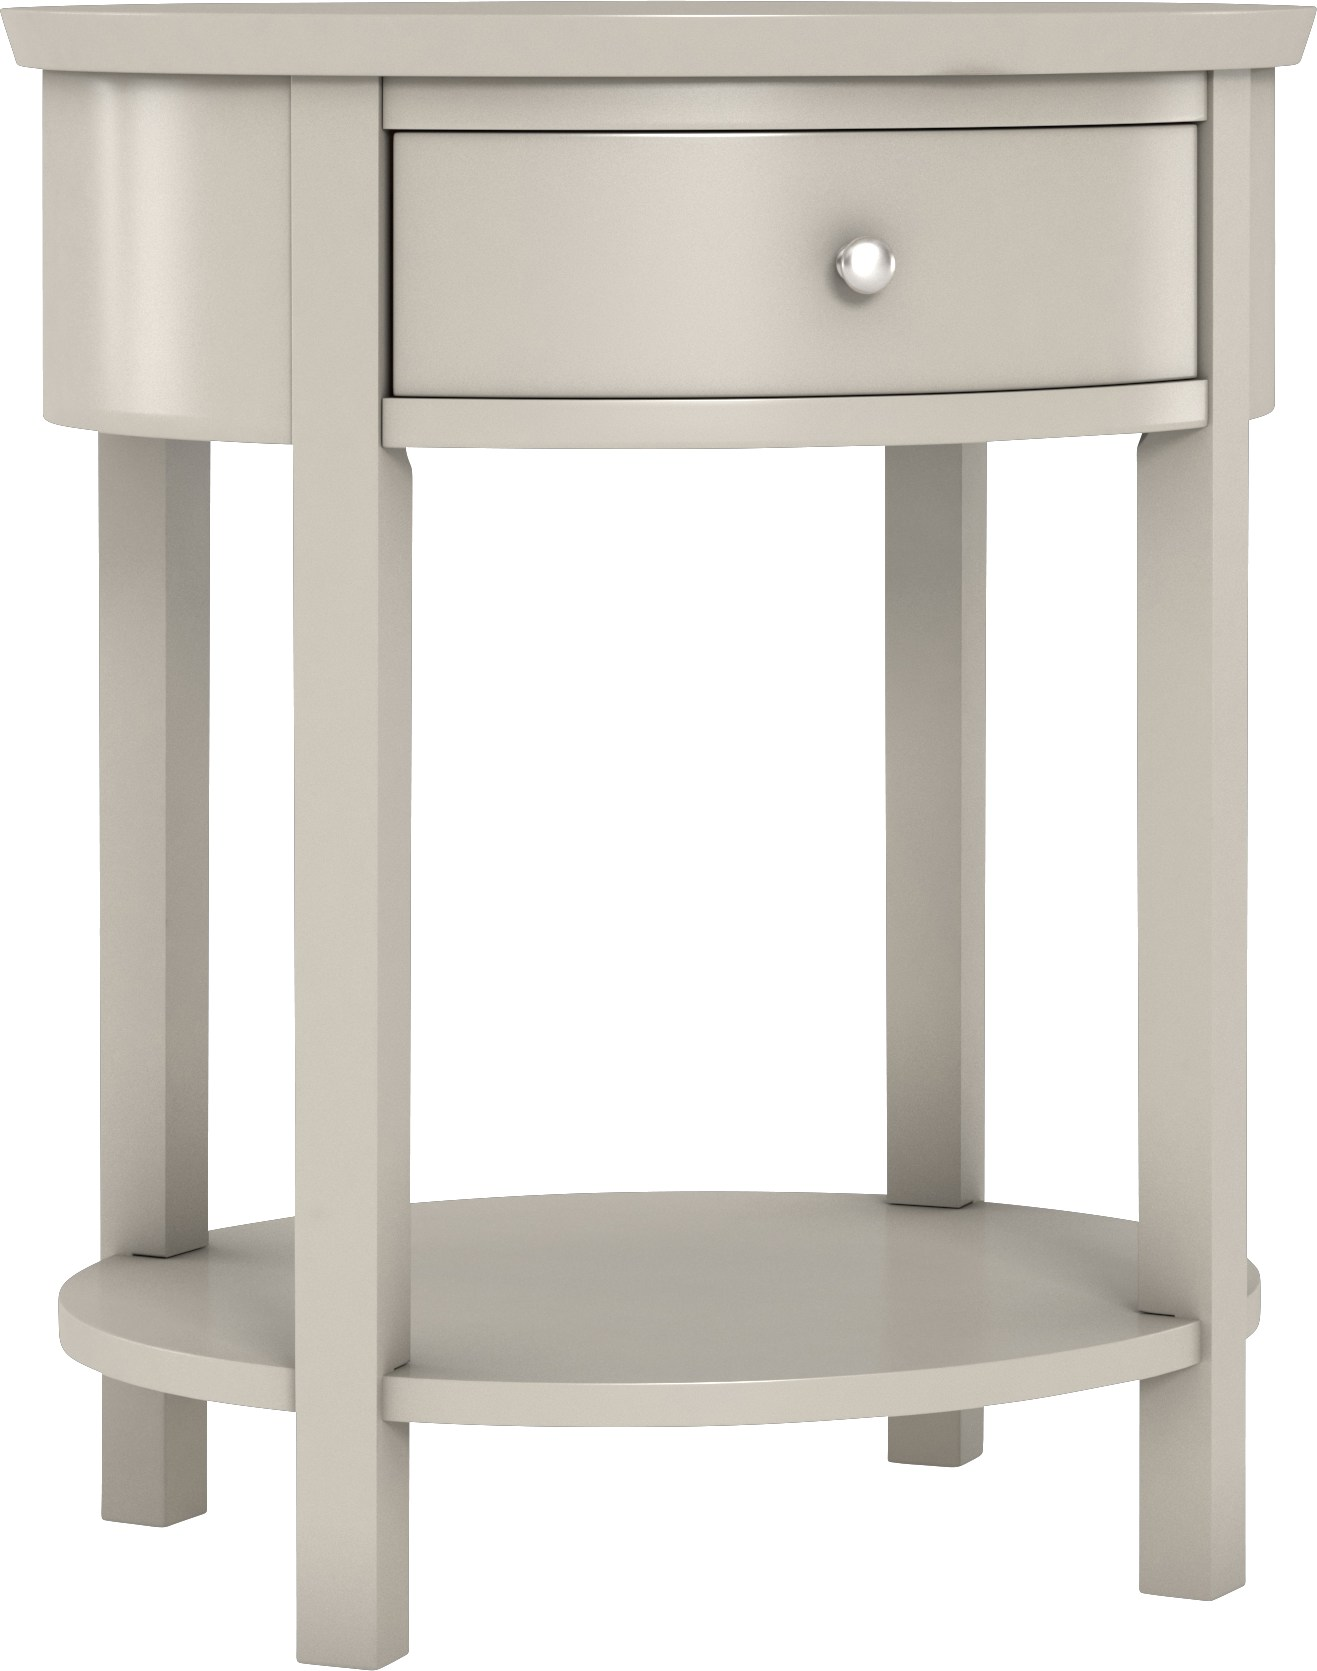 spaulding silver accent table tables colors drawer side circular patio furniture commercial office bedroom white outdoor end chair restoration hardware leather teak decorative